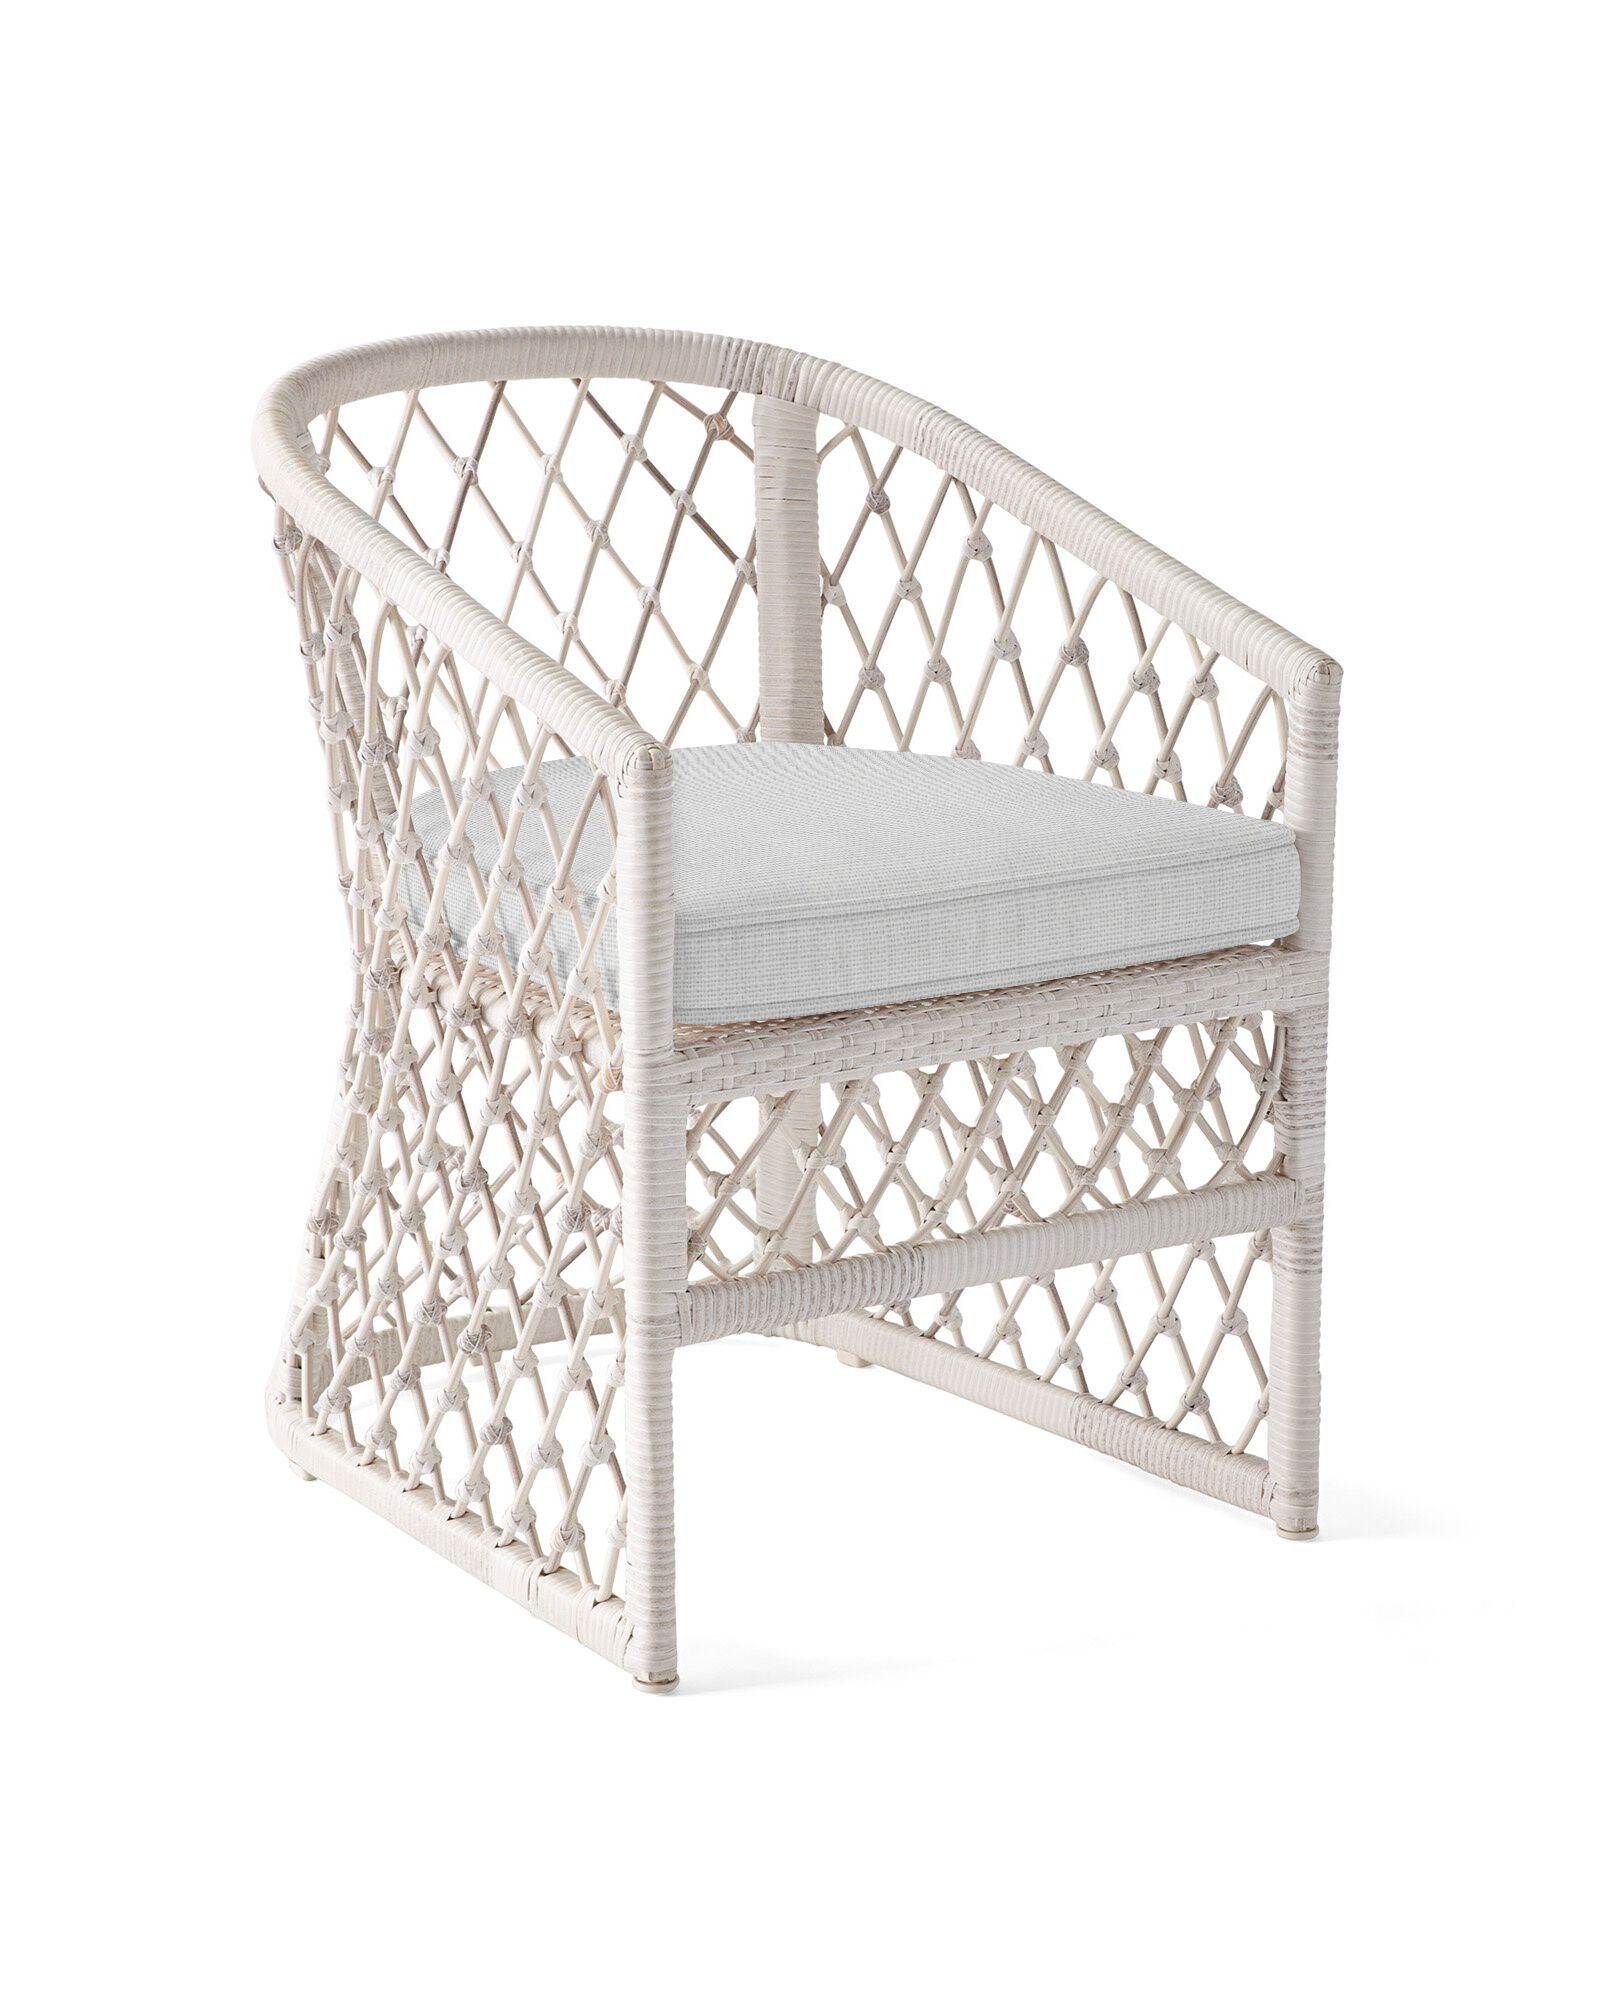 Cushion Cover for Capistrano Dining Chair, Perennials Basketweave Fog